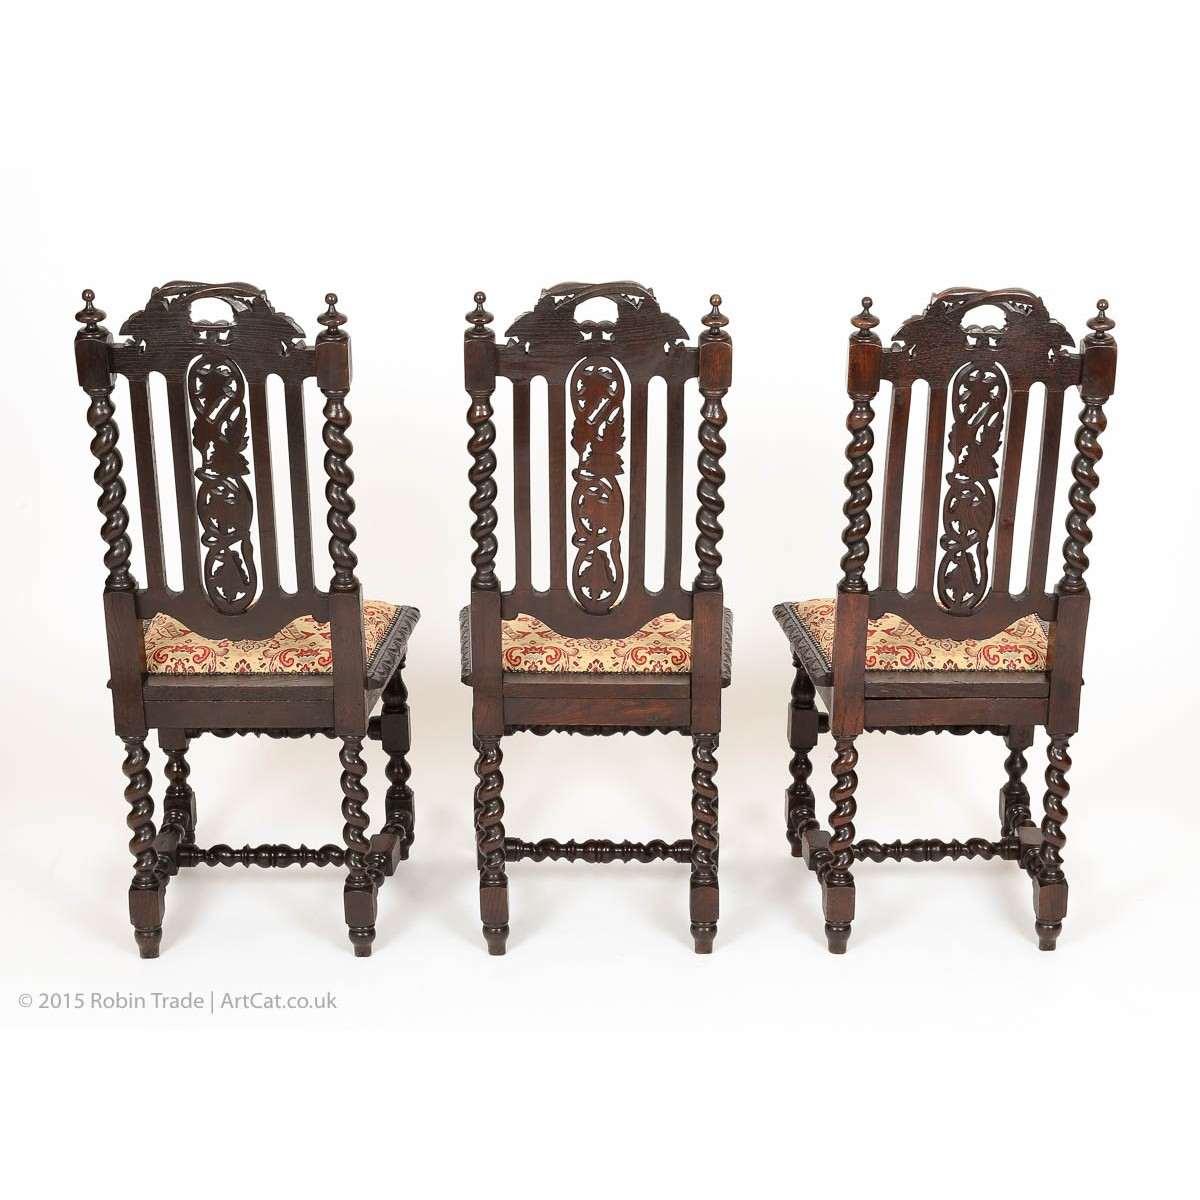 Antique victorian dining chairs -  Antique Set Of 6 Victorian Gothic Oak High Back Dining Chairs